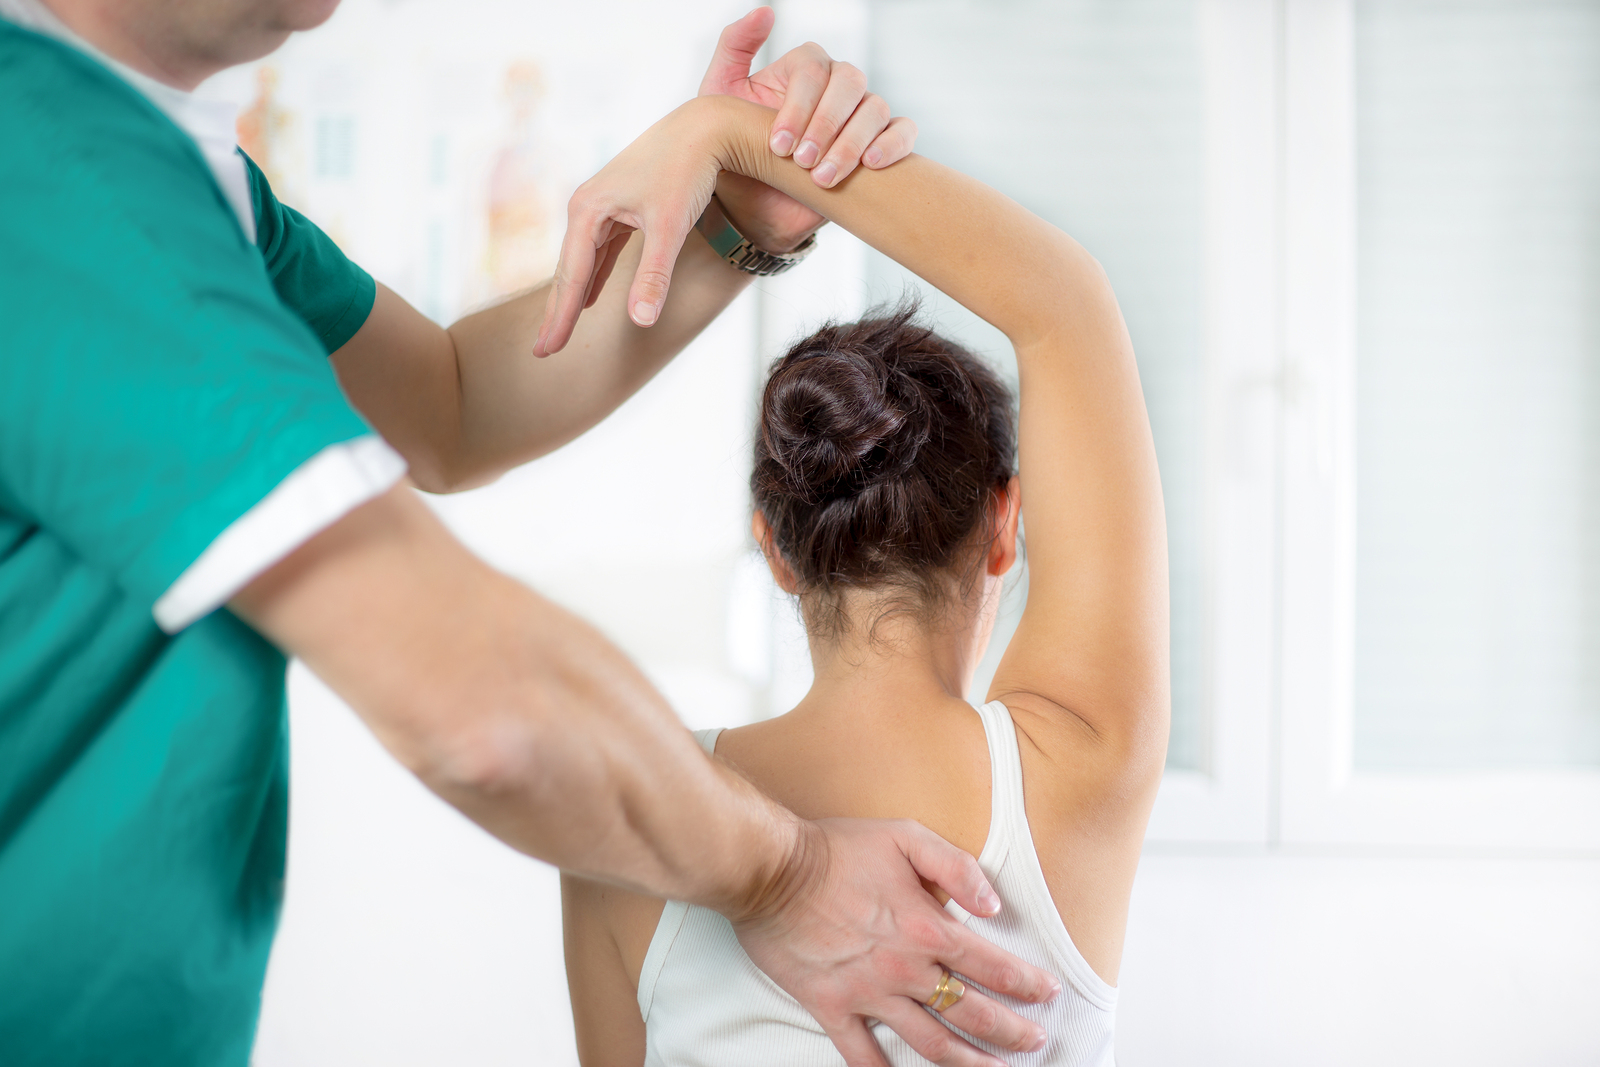 If you need pain relief our chiropractor in Franklin offers a number of different services to help heal you and relieve pain. Call us today to learn more!